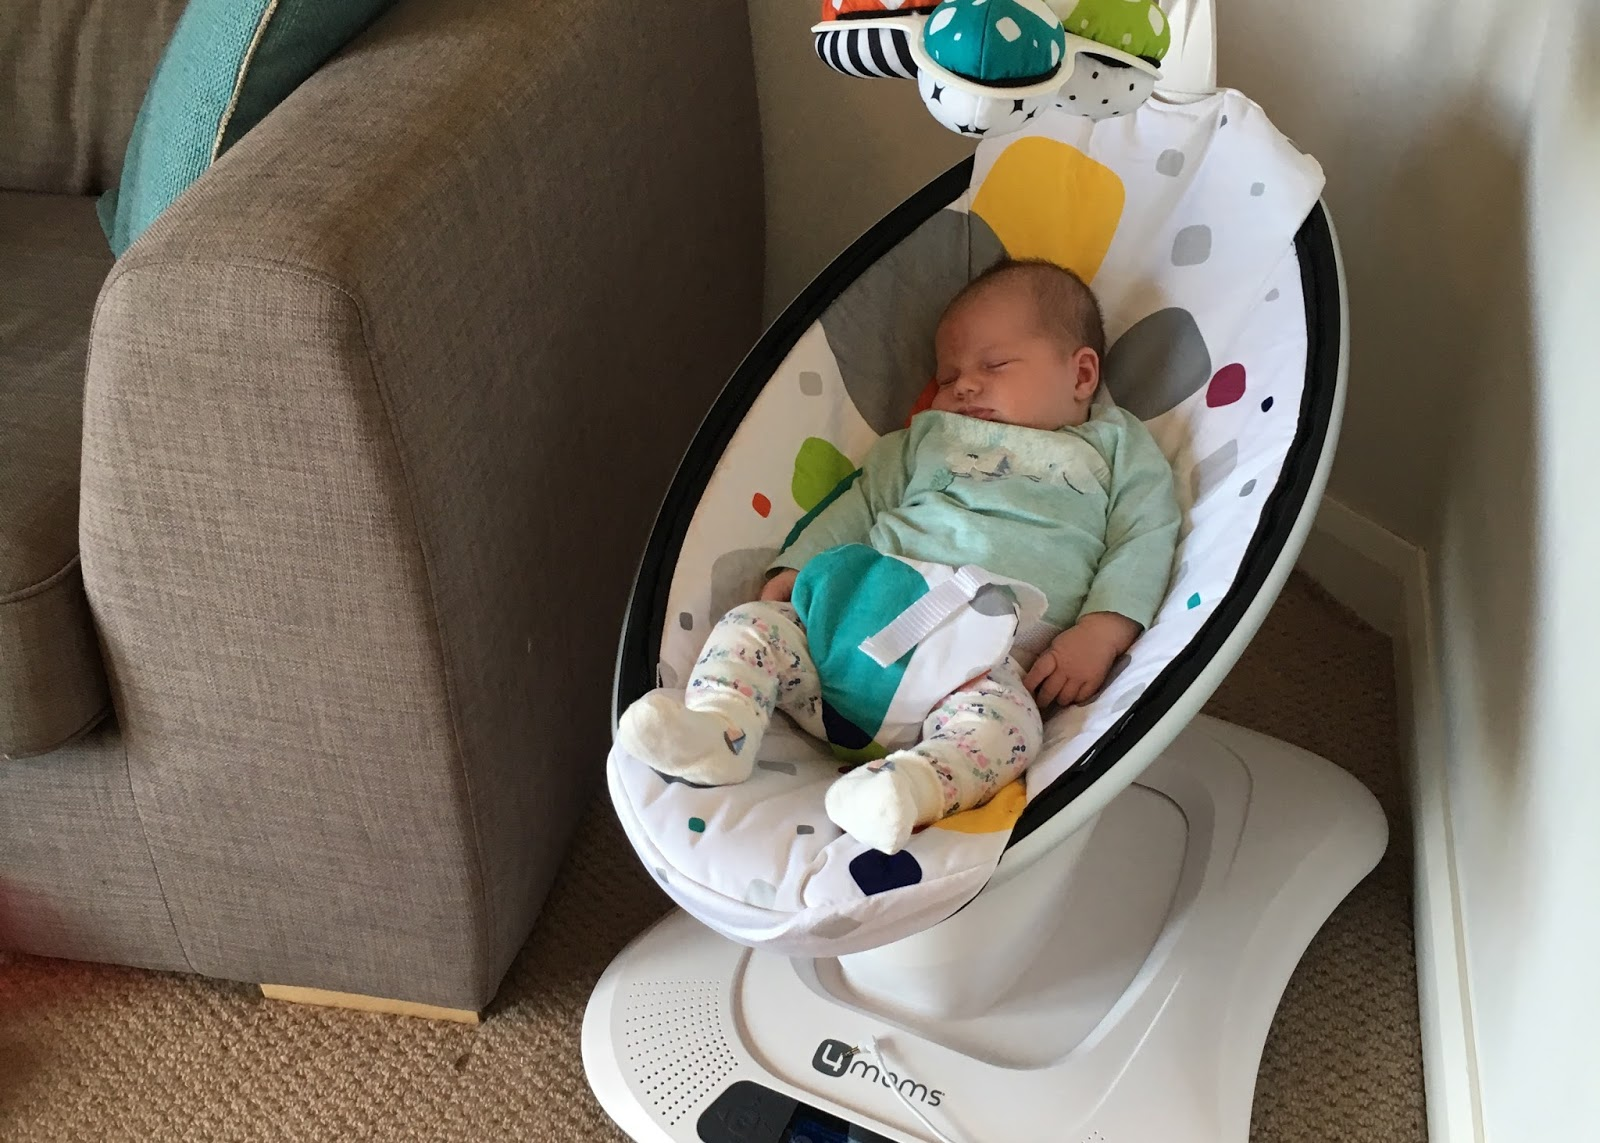 4moms Mamaroo Review After The Car Seat